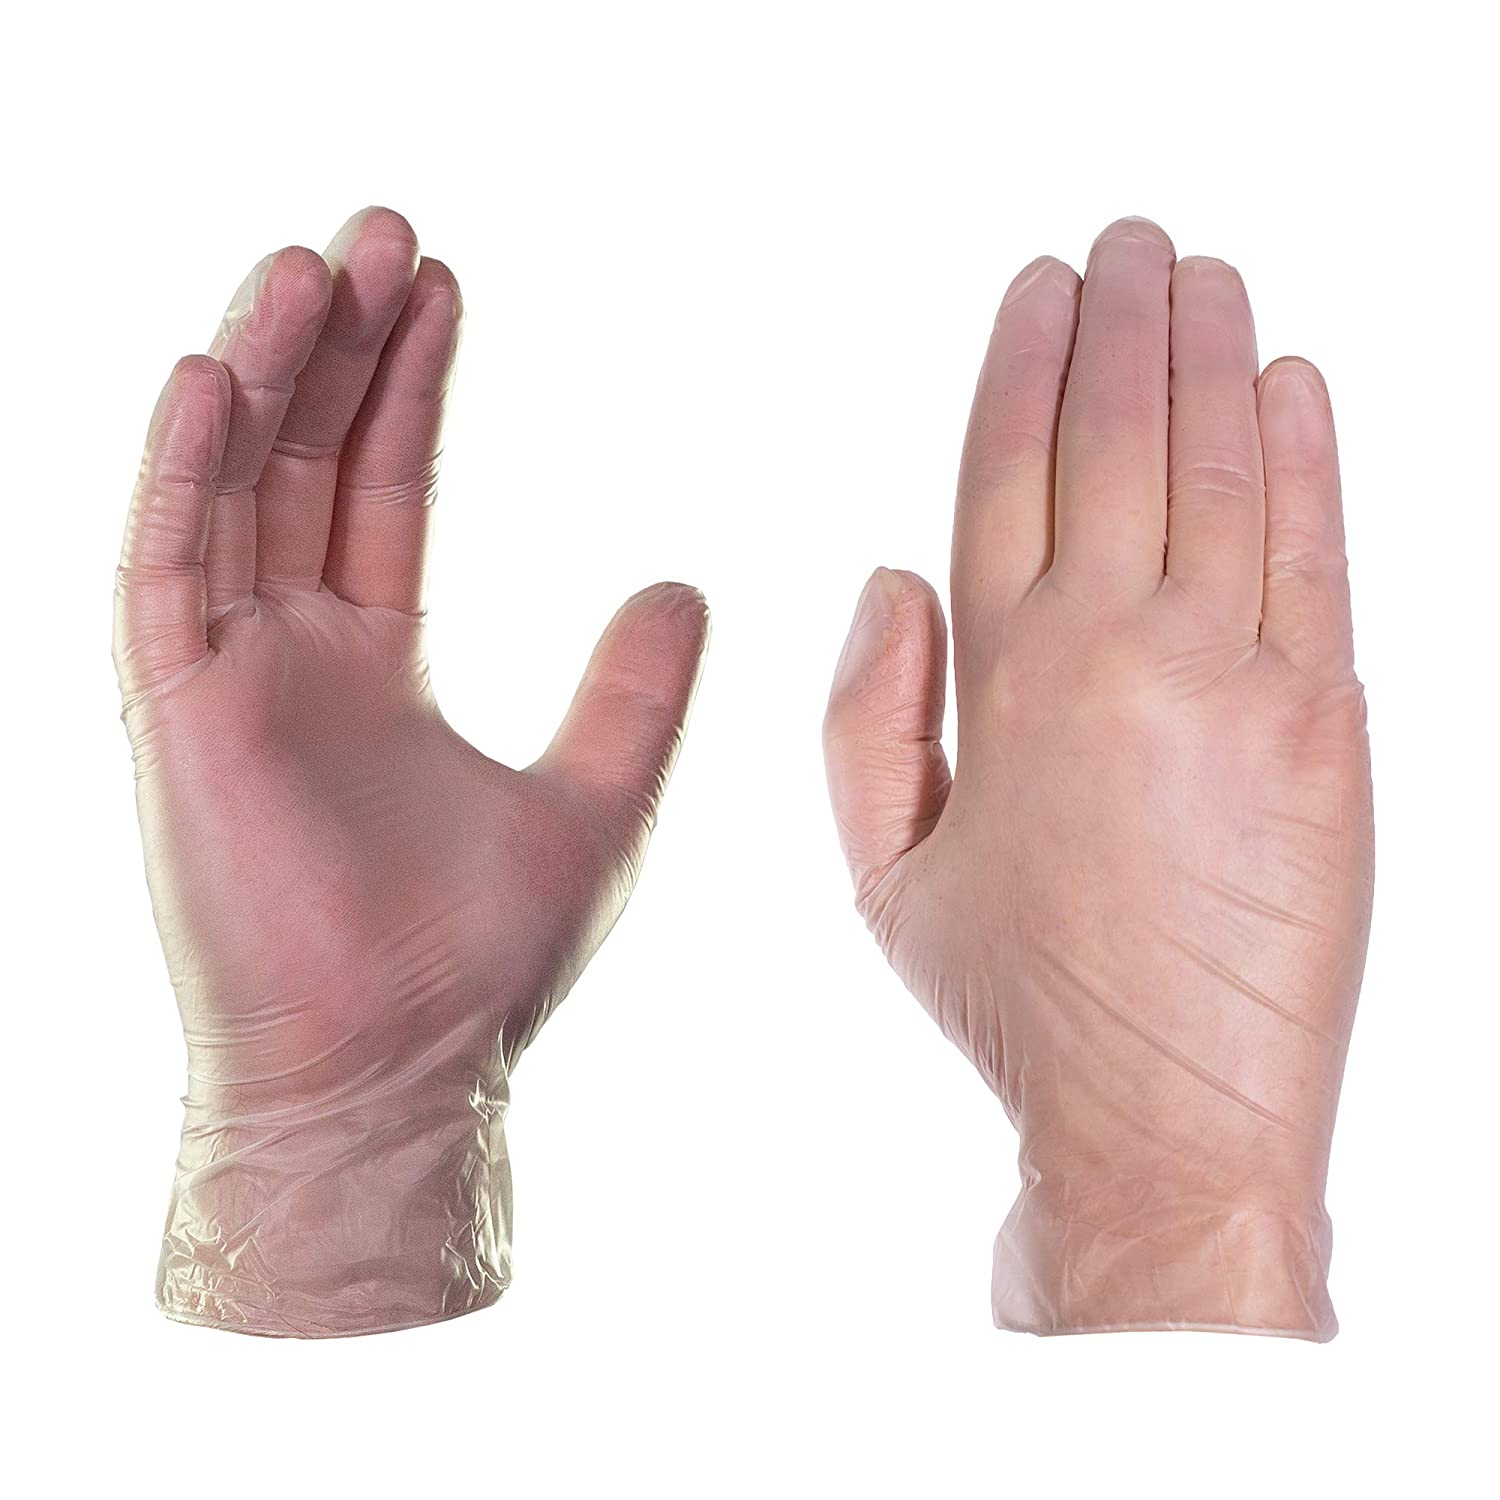 AMMEX - IVPF44100-BX - GlovePlus - Vinyl Gloves - Powder Free, Disposable, Latex Rubber Free, Non-sterile, Polymer Coated, 4 mil Thick, Medium, Clear (Box of 100)